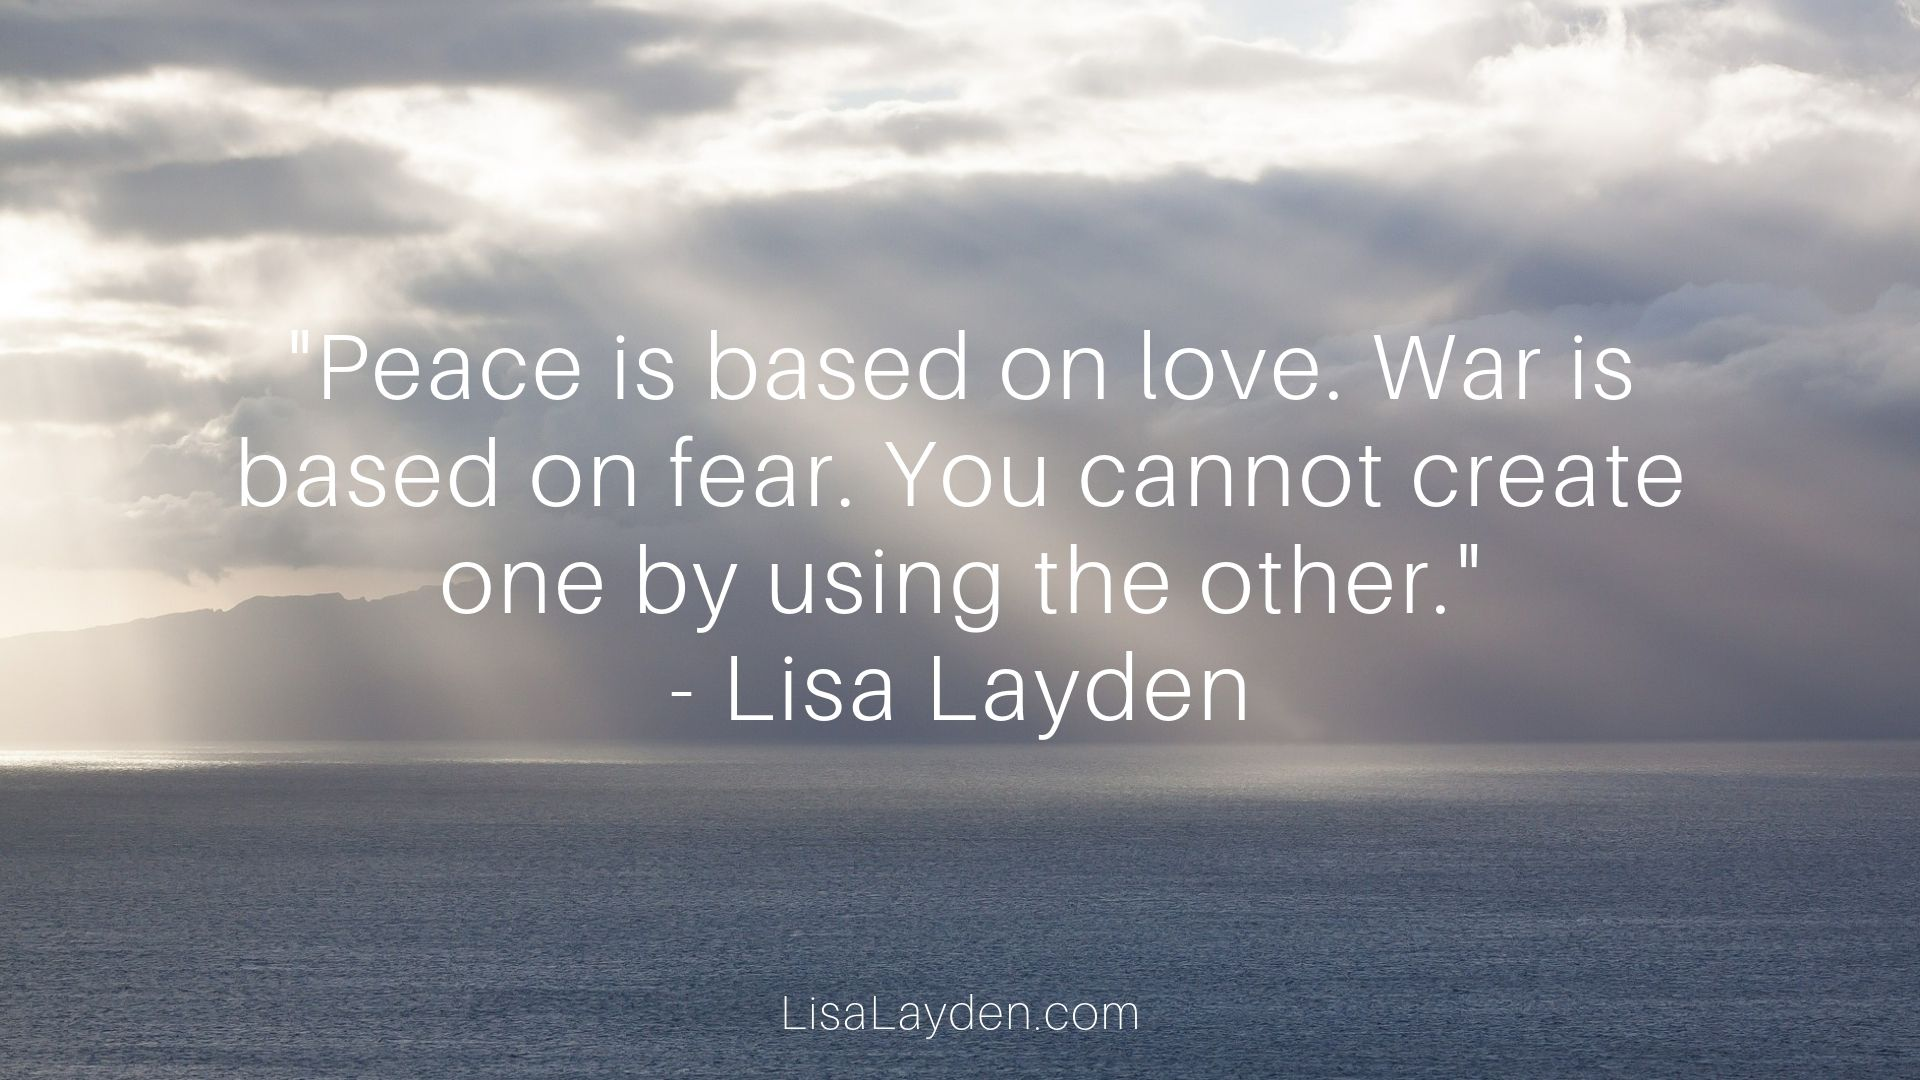 """Quote - """"Peace is based on love. War is based on fear. You cannot create one by using the other."""" – Lisa Layden"""